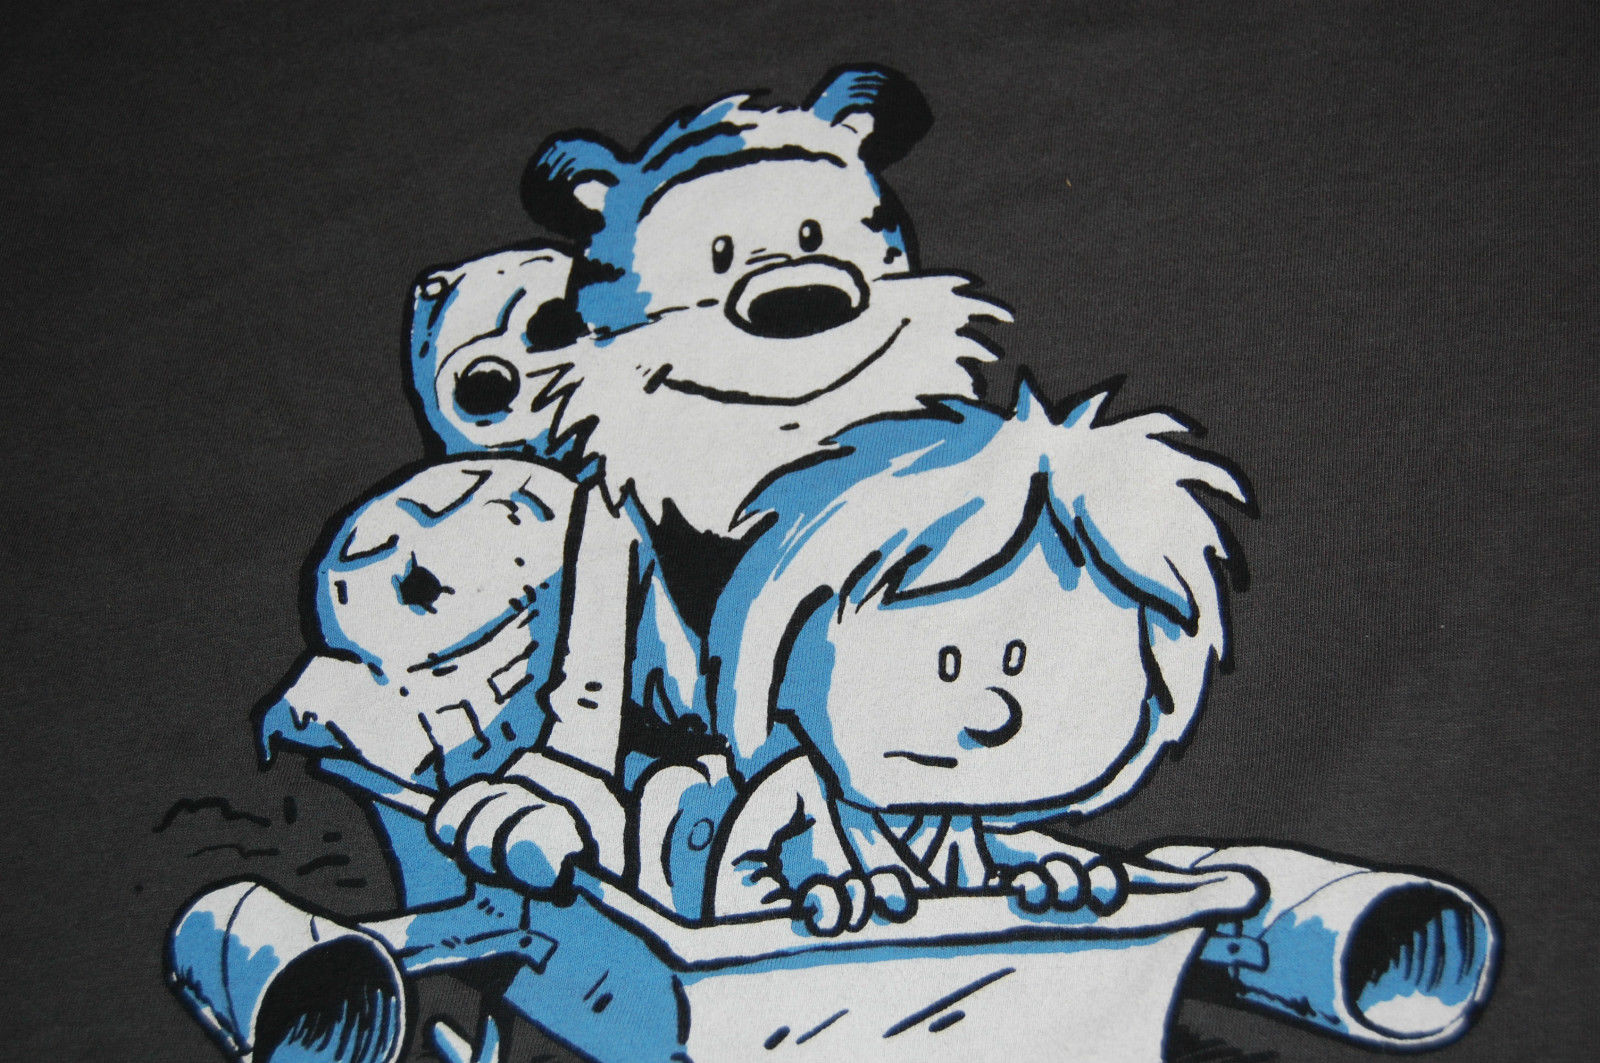 Calvin and Hobbes Star Wars Mash Up T Shirt Medium Not the Droids Billy Allison